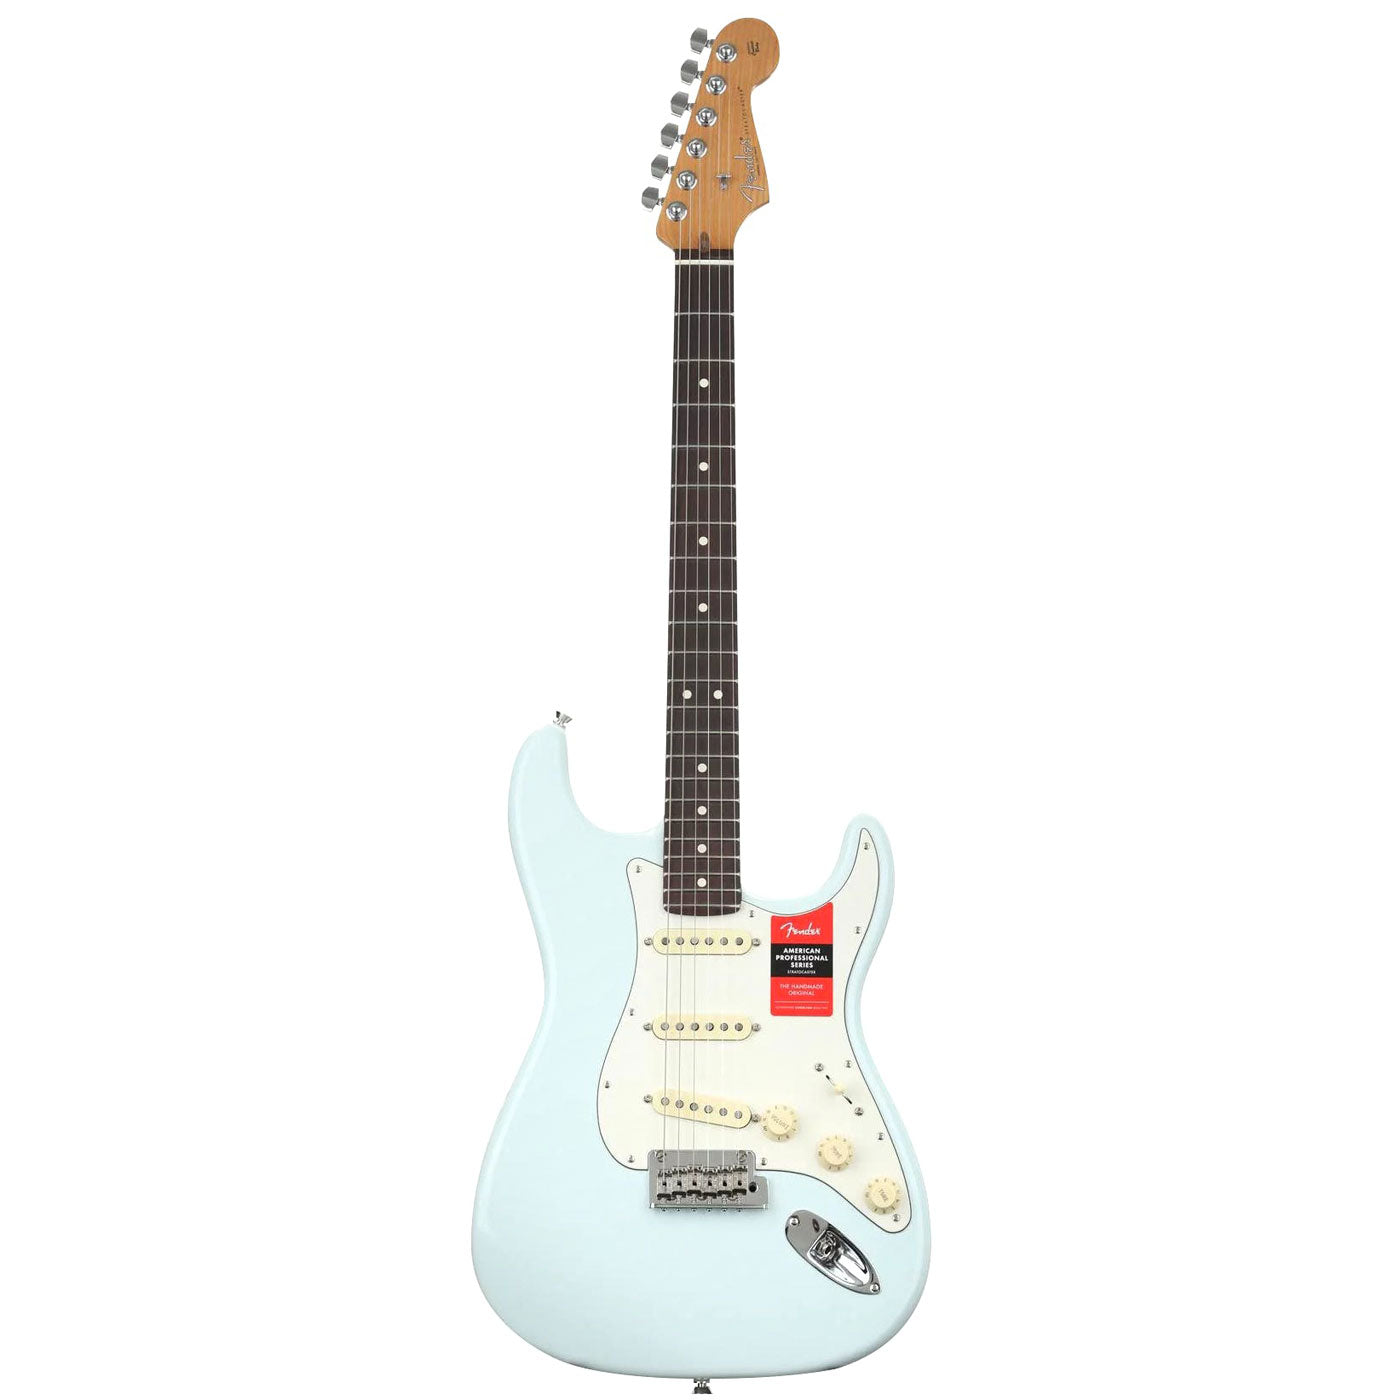 Fender FSR Limited Edition American Pro Stratocaster, Roasted Maple Neck, Rosewood, Sonic Blue